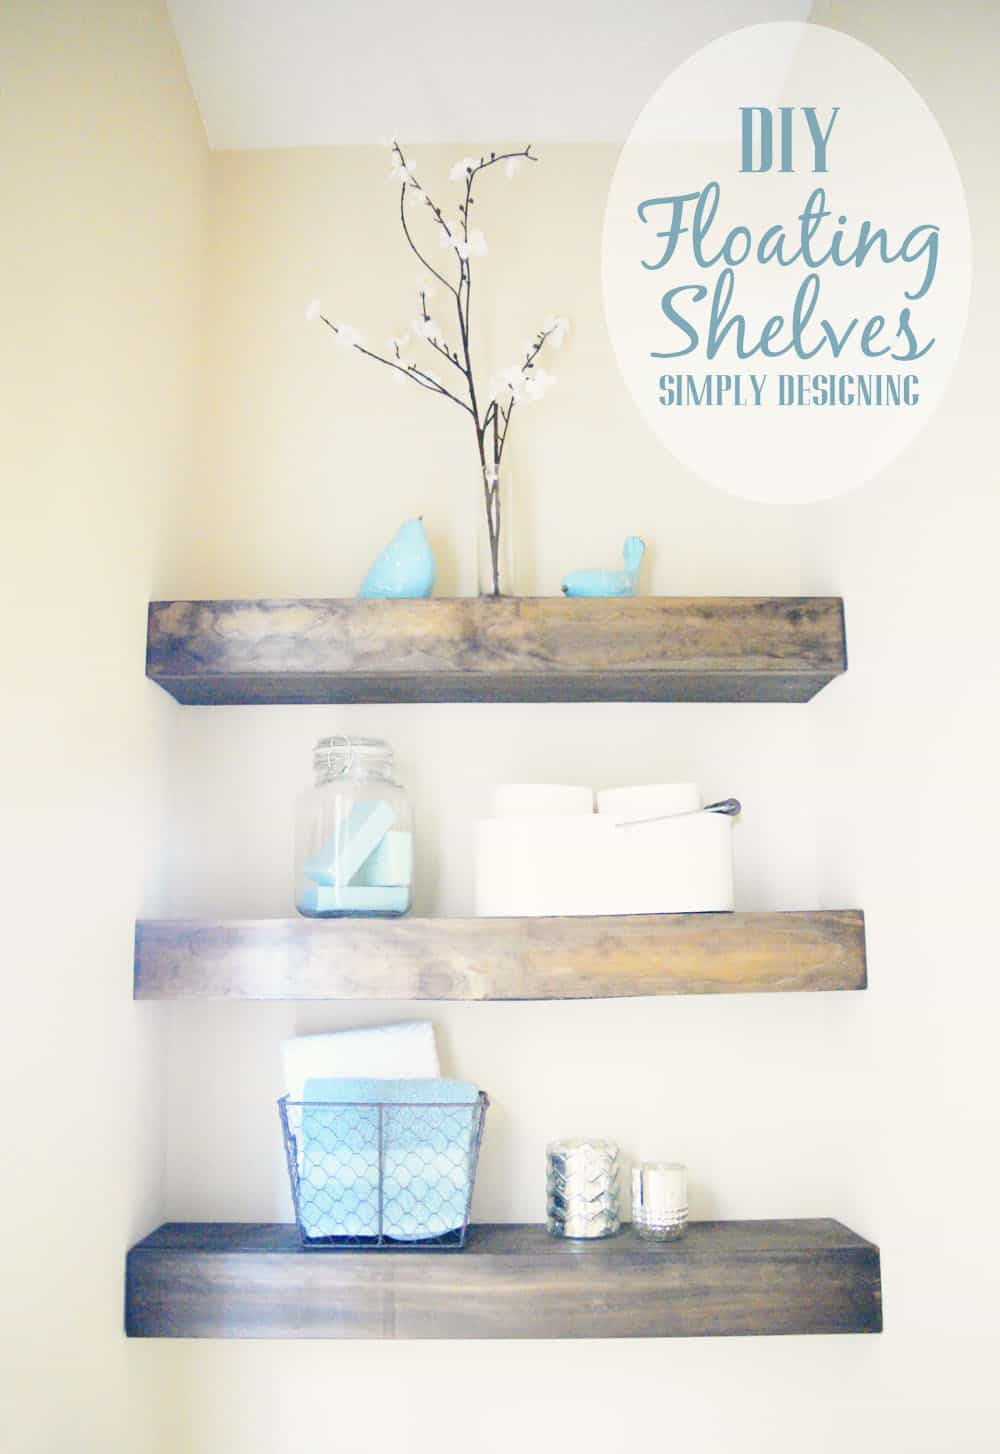 Best ideas about DIY Floating Wall Shelves . Save or Pin DIY Floating Shelves Now.